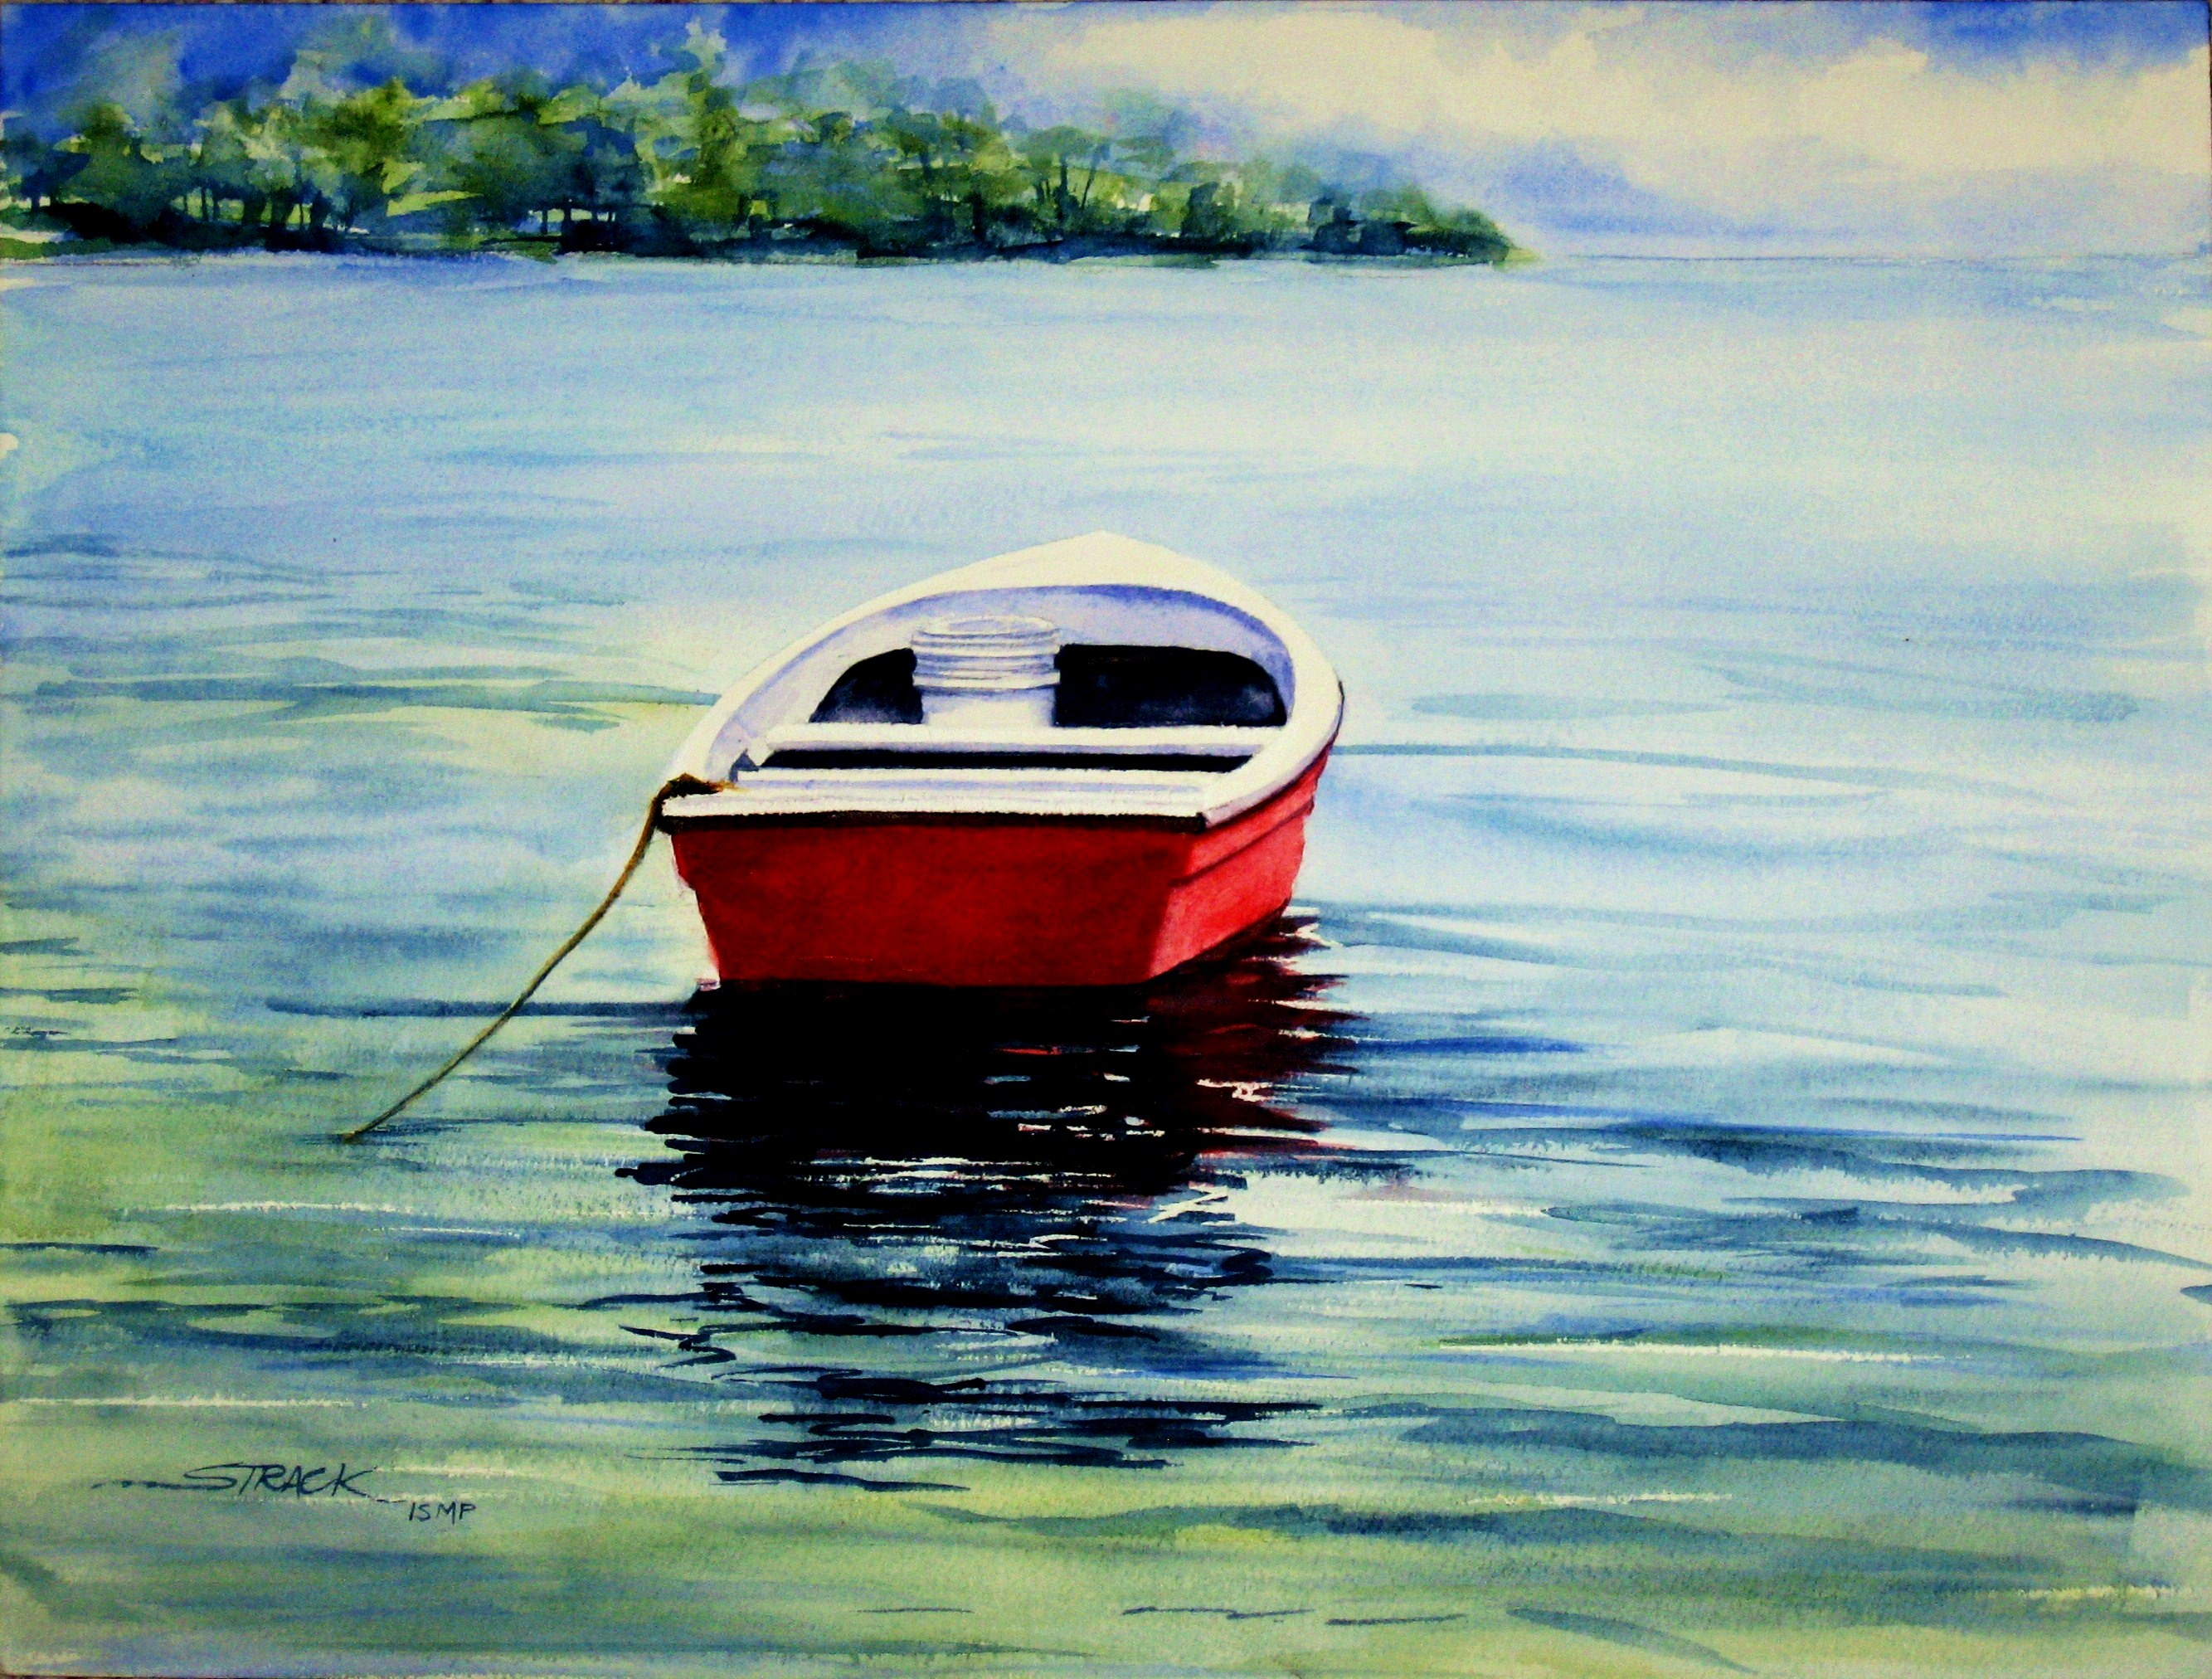 Red Dinghy by Annie Strack, watercolour